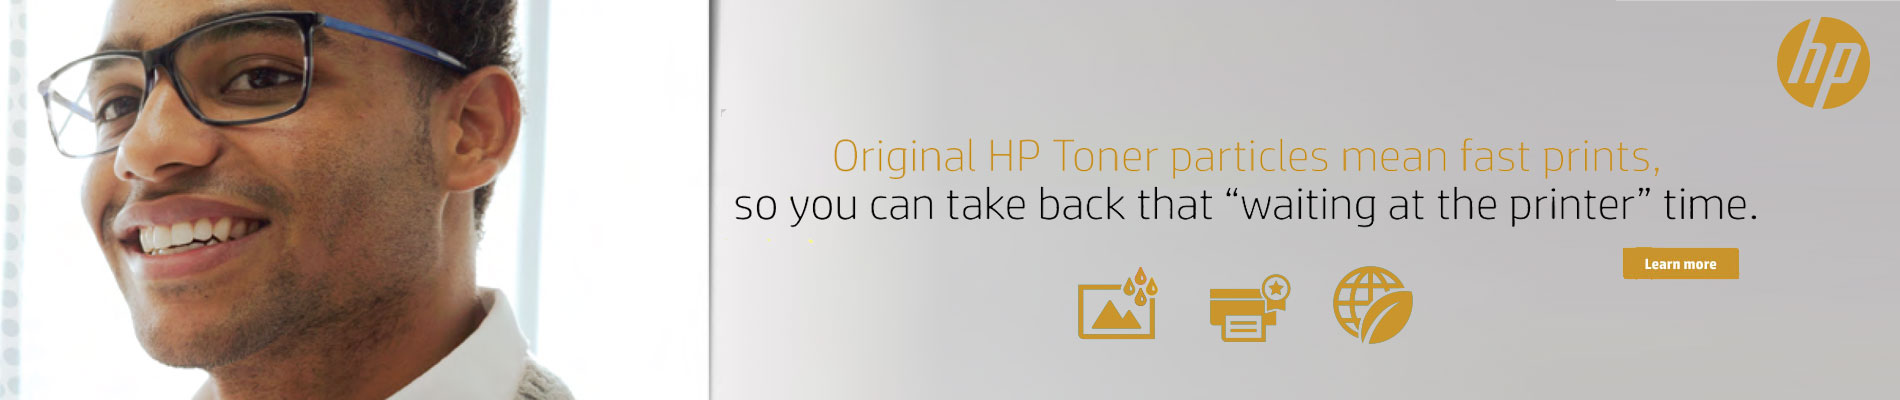 Original HP Toner Particles